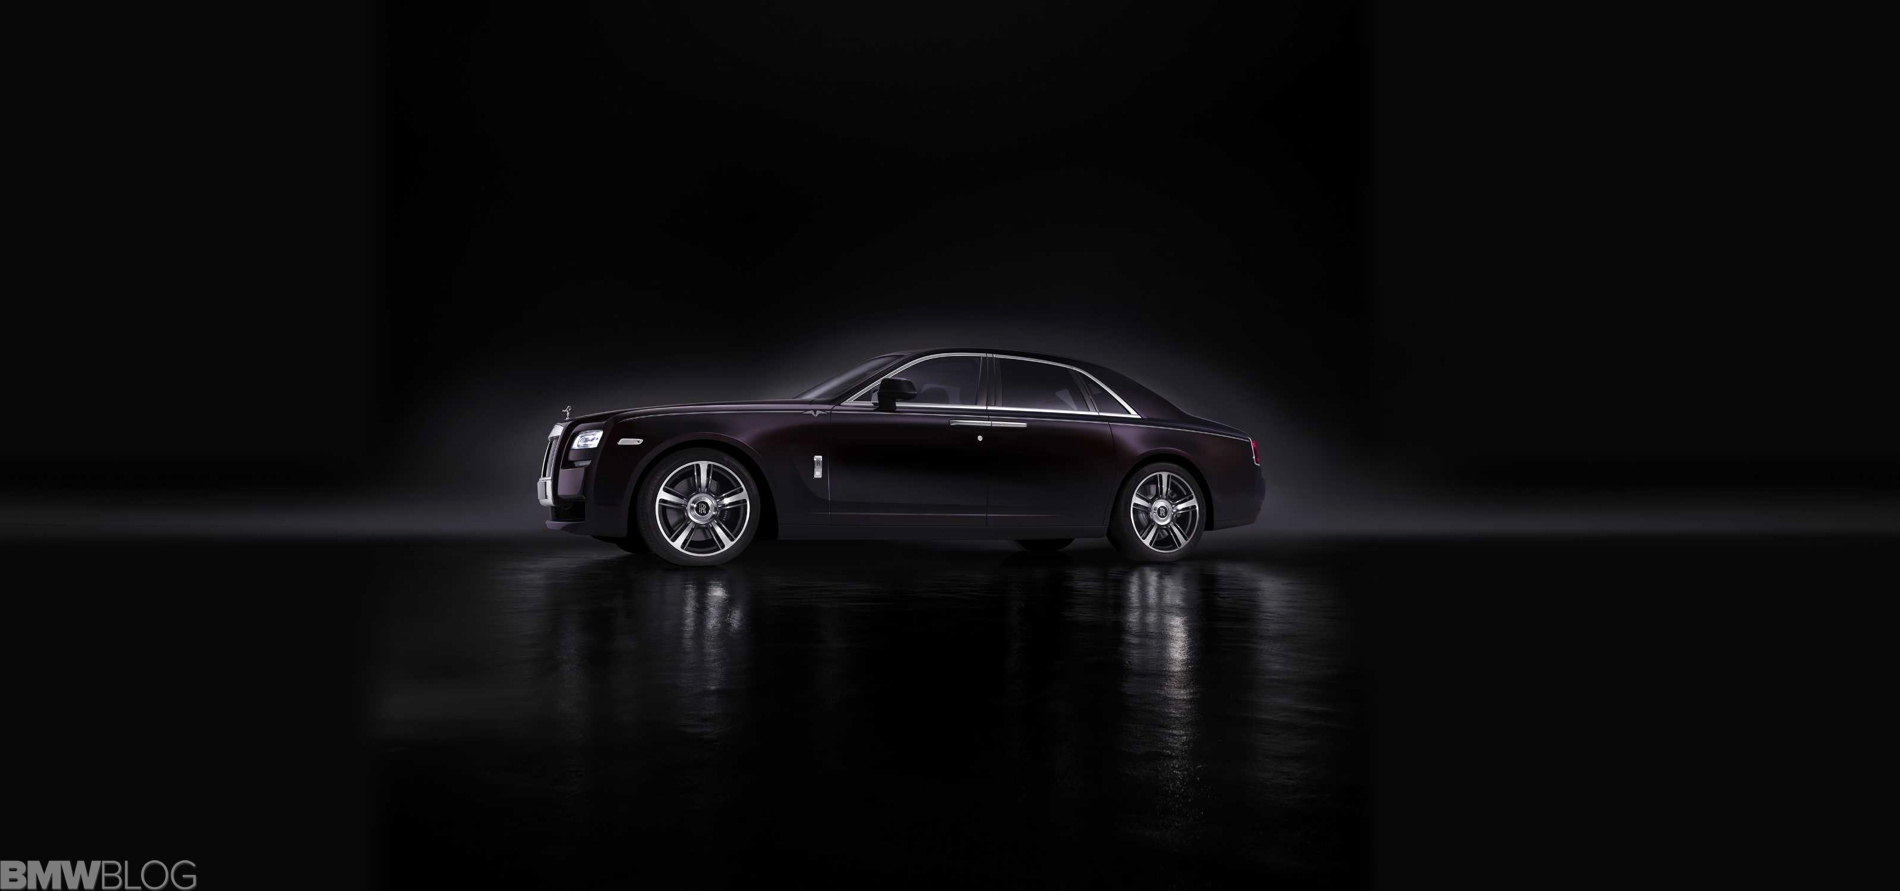 2019 Rolls Royce Ghost V Specification photo - 5